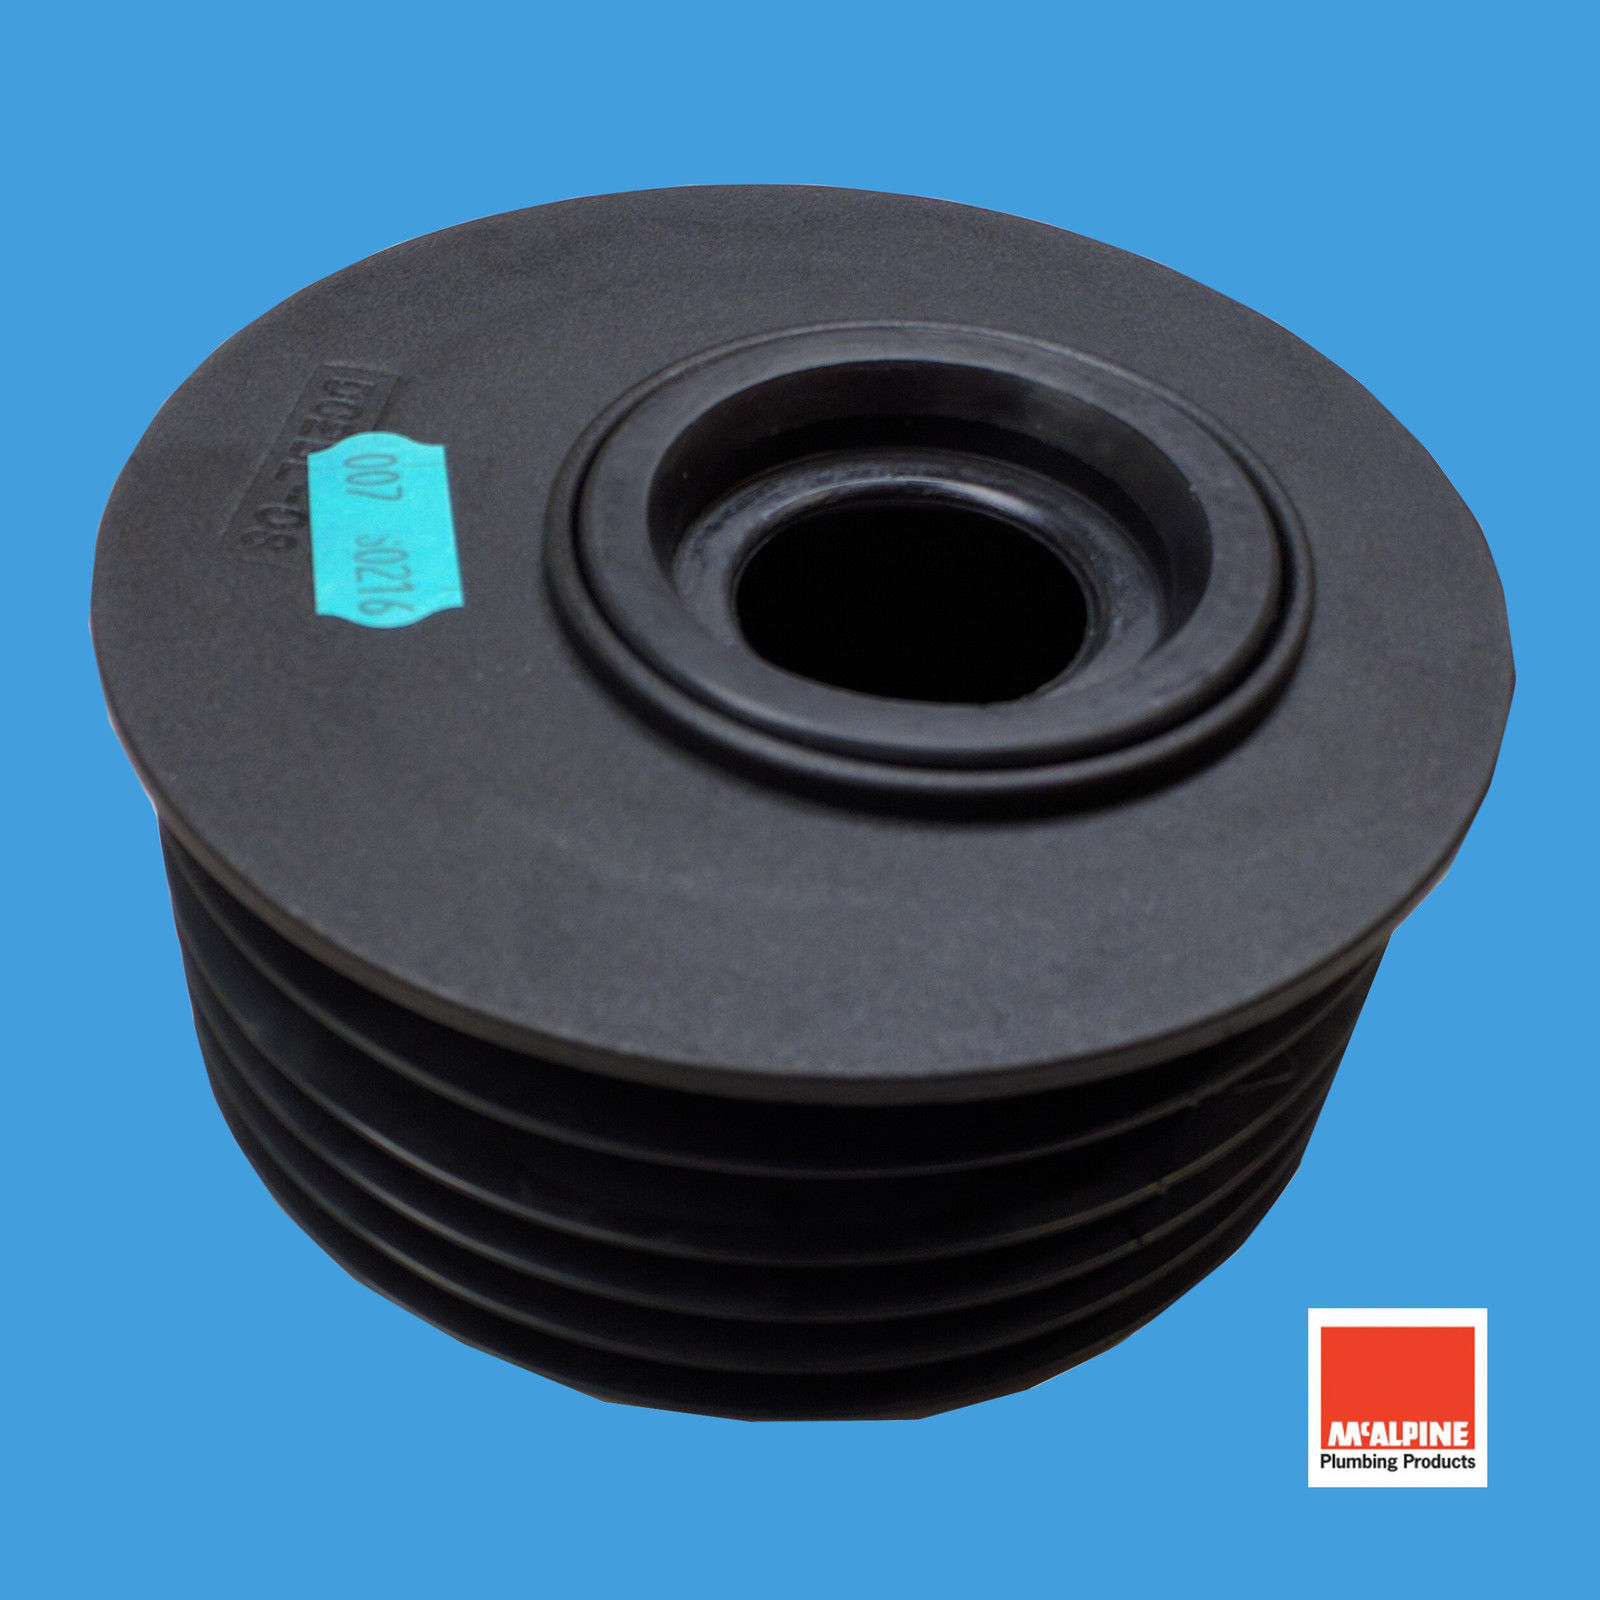 Waste Pipe Adapter for 110mm Soil Pipe Takes 32mm 40mm or 50mm Waste Pipe